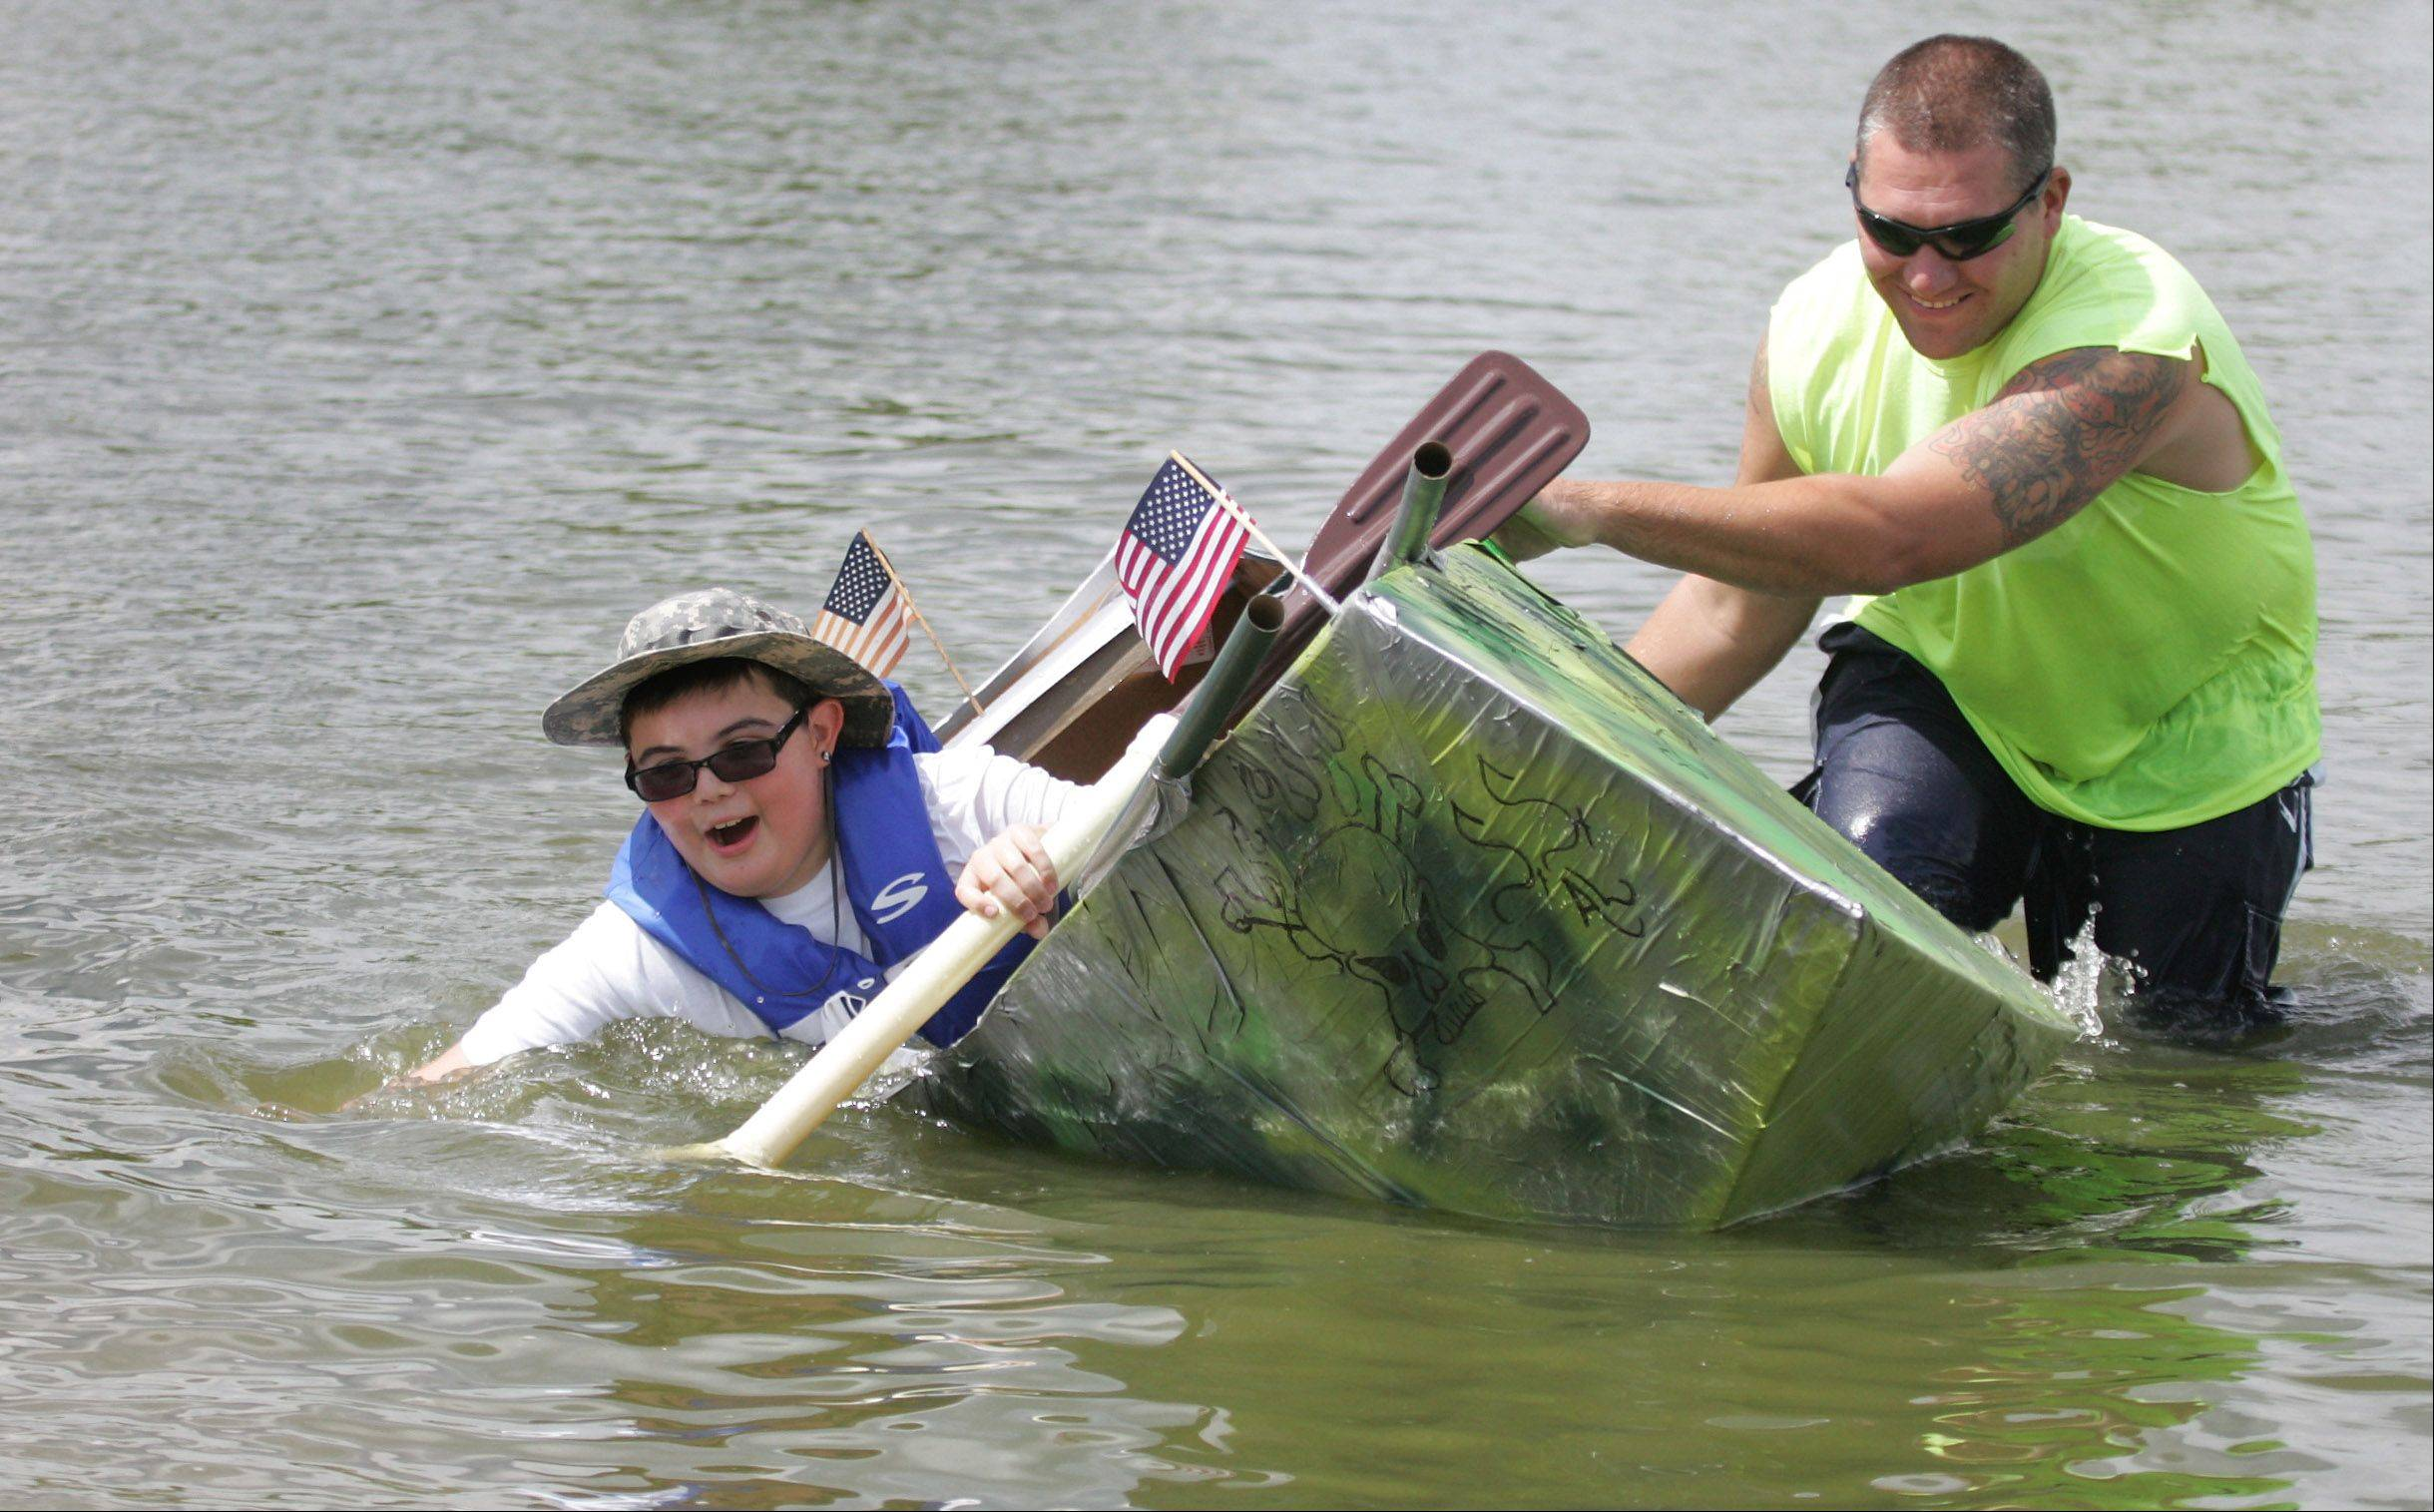 Alex Masterton, 12, quickly sinks in his boat as Fox Lake firefighter Dana Magness tries to help during the annual Cardboard Cup Regatta Sunday at Lakefront Park sponsored by the Village of Fox Lake Parks and Recreation Department. Contestants built boats made strictly of cardboard, duct tape and paint, and then raced them for medals and trophies.